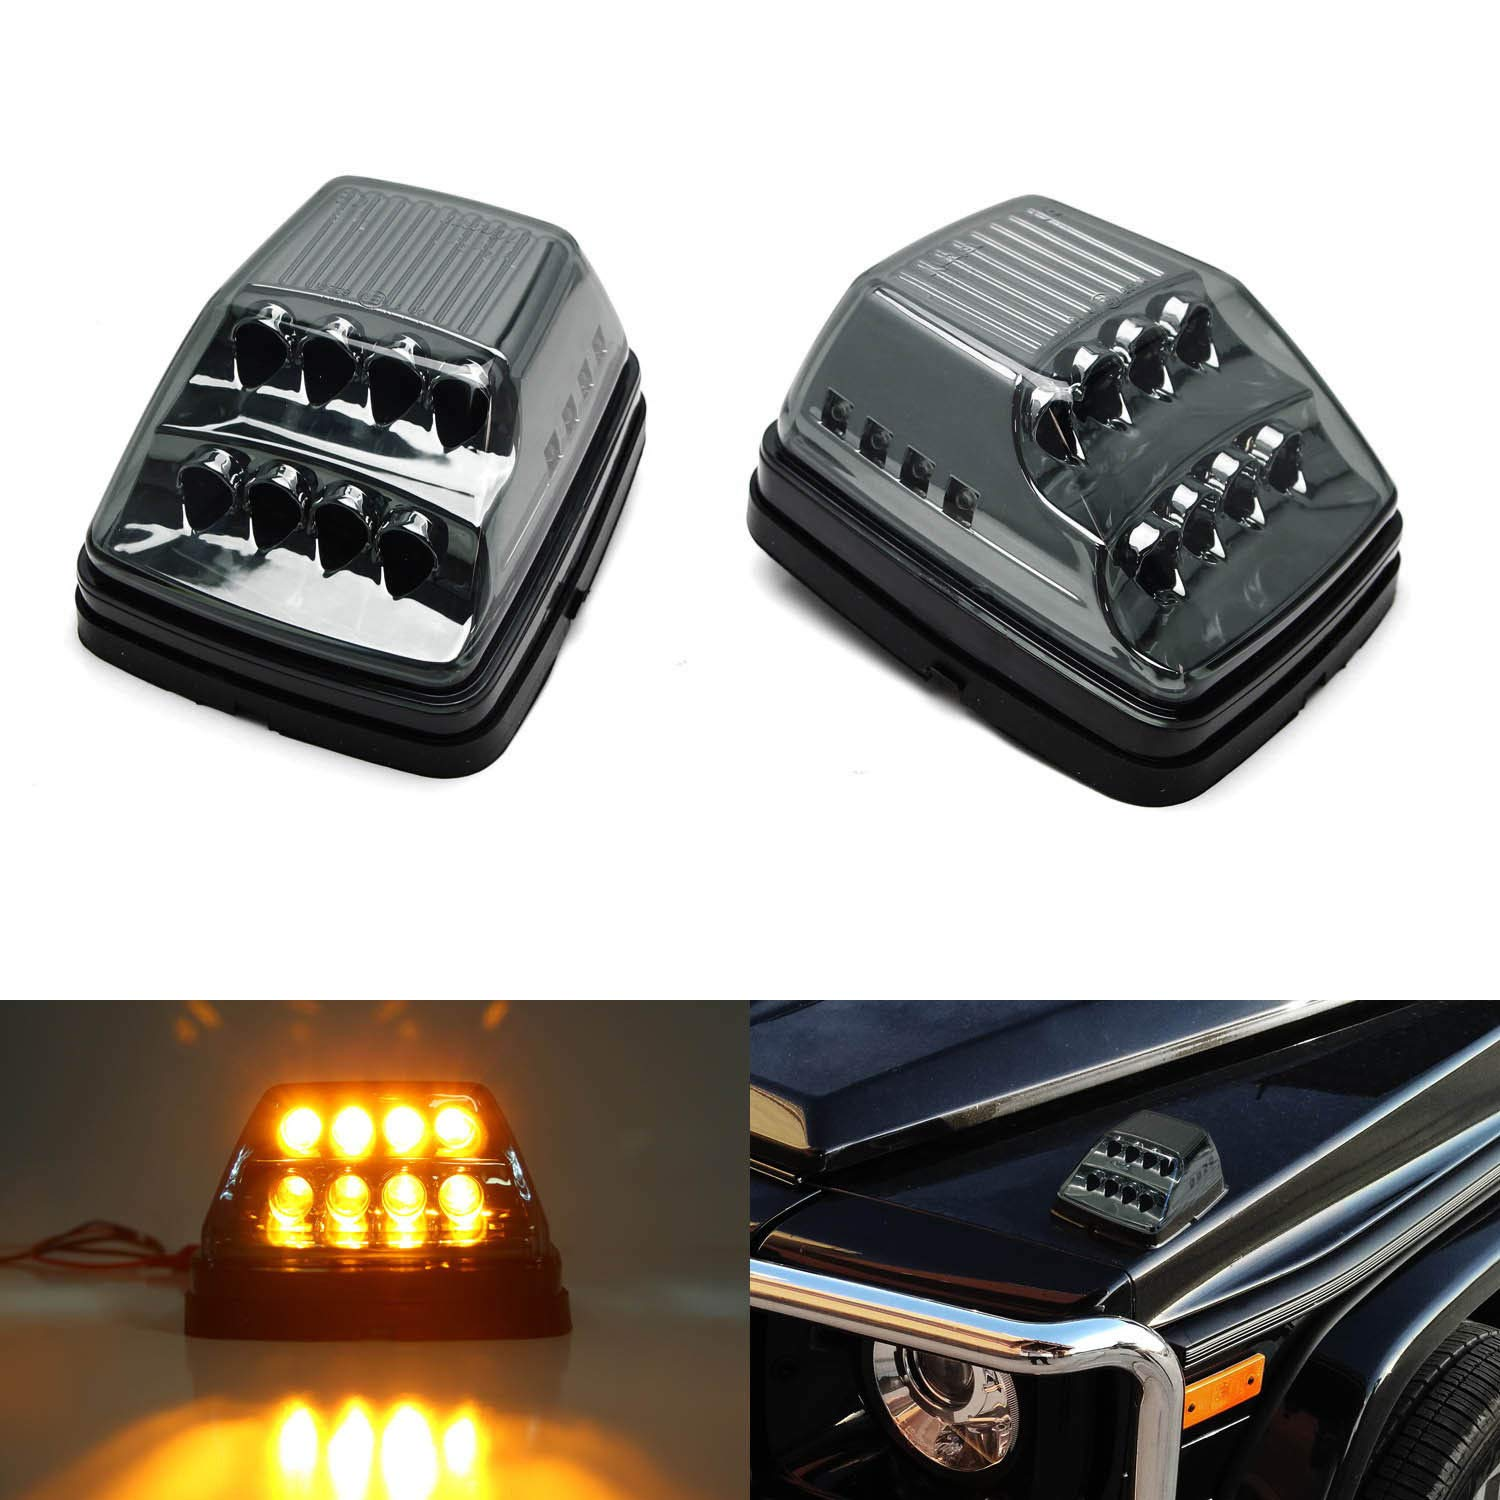 iJDMTOY Smoked Lens Amber LED Front Turn Signal Lamps For 90-up Mercedes W463 G-Class G500 G550 G600 G55 G63 AMG w/White LED Position Lights iJDMTOY Auto Accessories Benz G-Wagon Full LED Turn Signal Assy